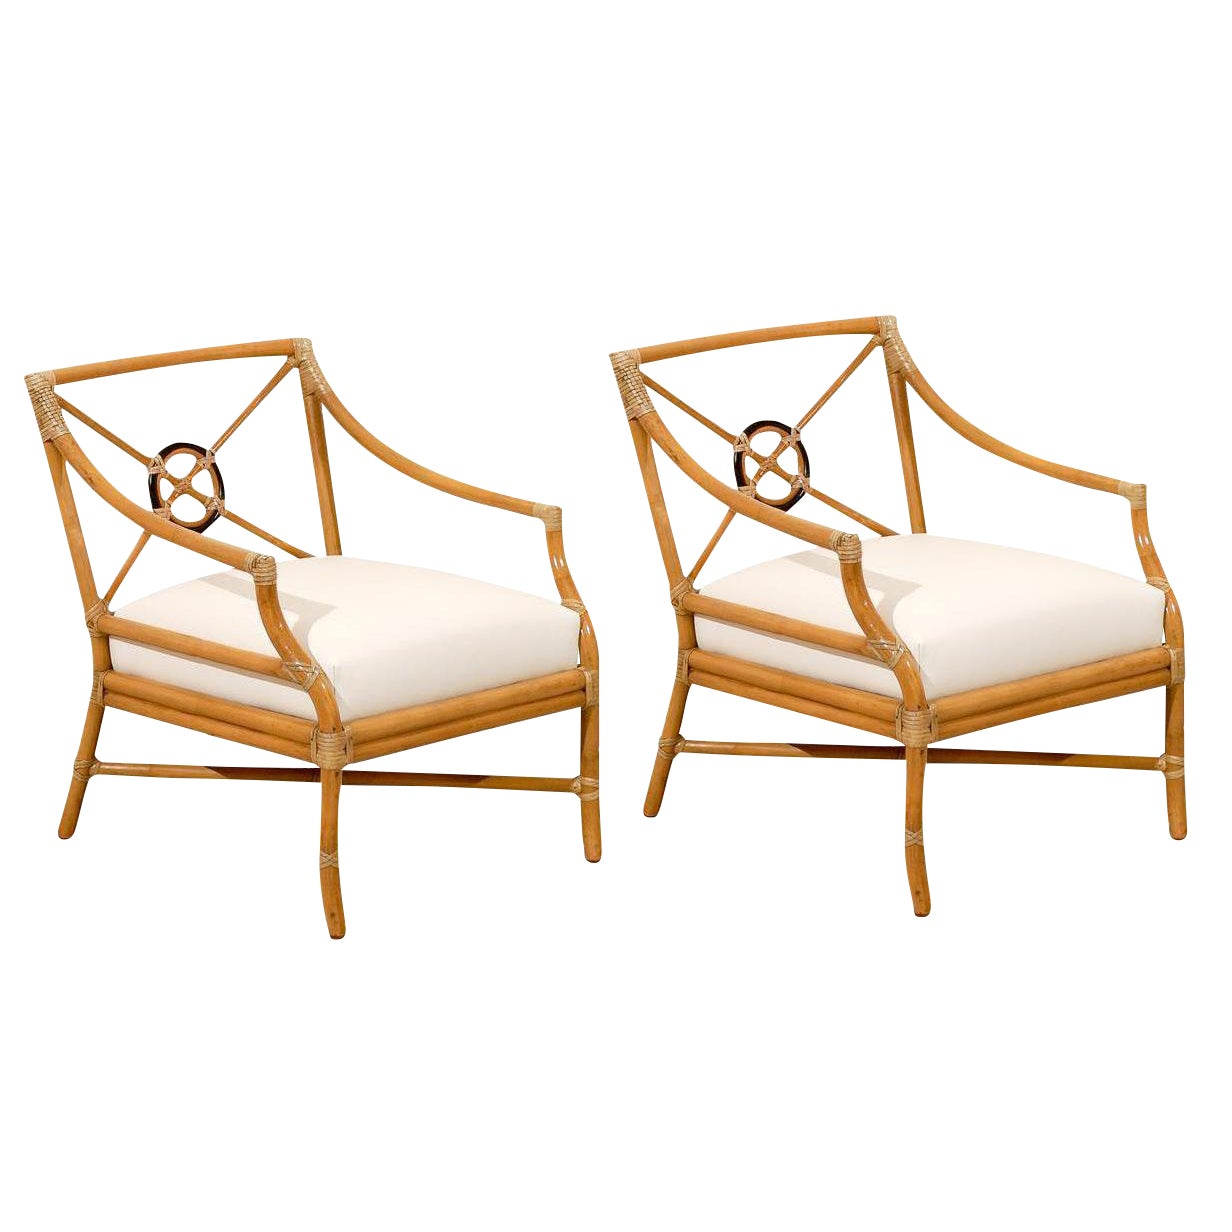 Luxury Beautiful Pair Of Vintage Bamboo Target Back Lounge Chairs By Mcguire Decaso